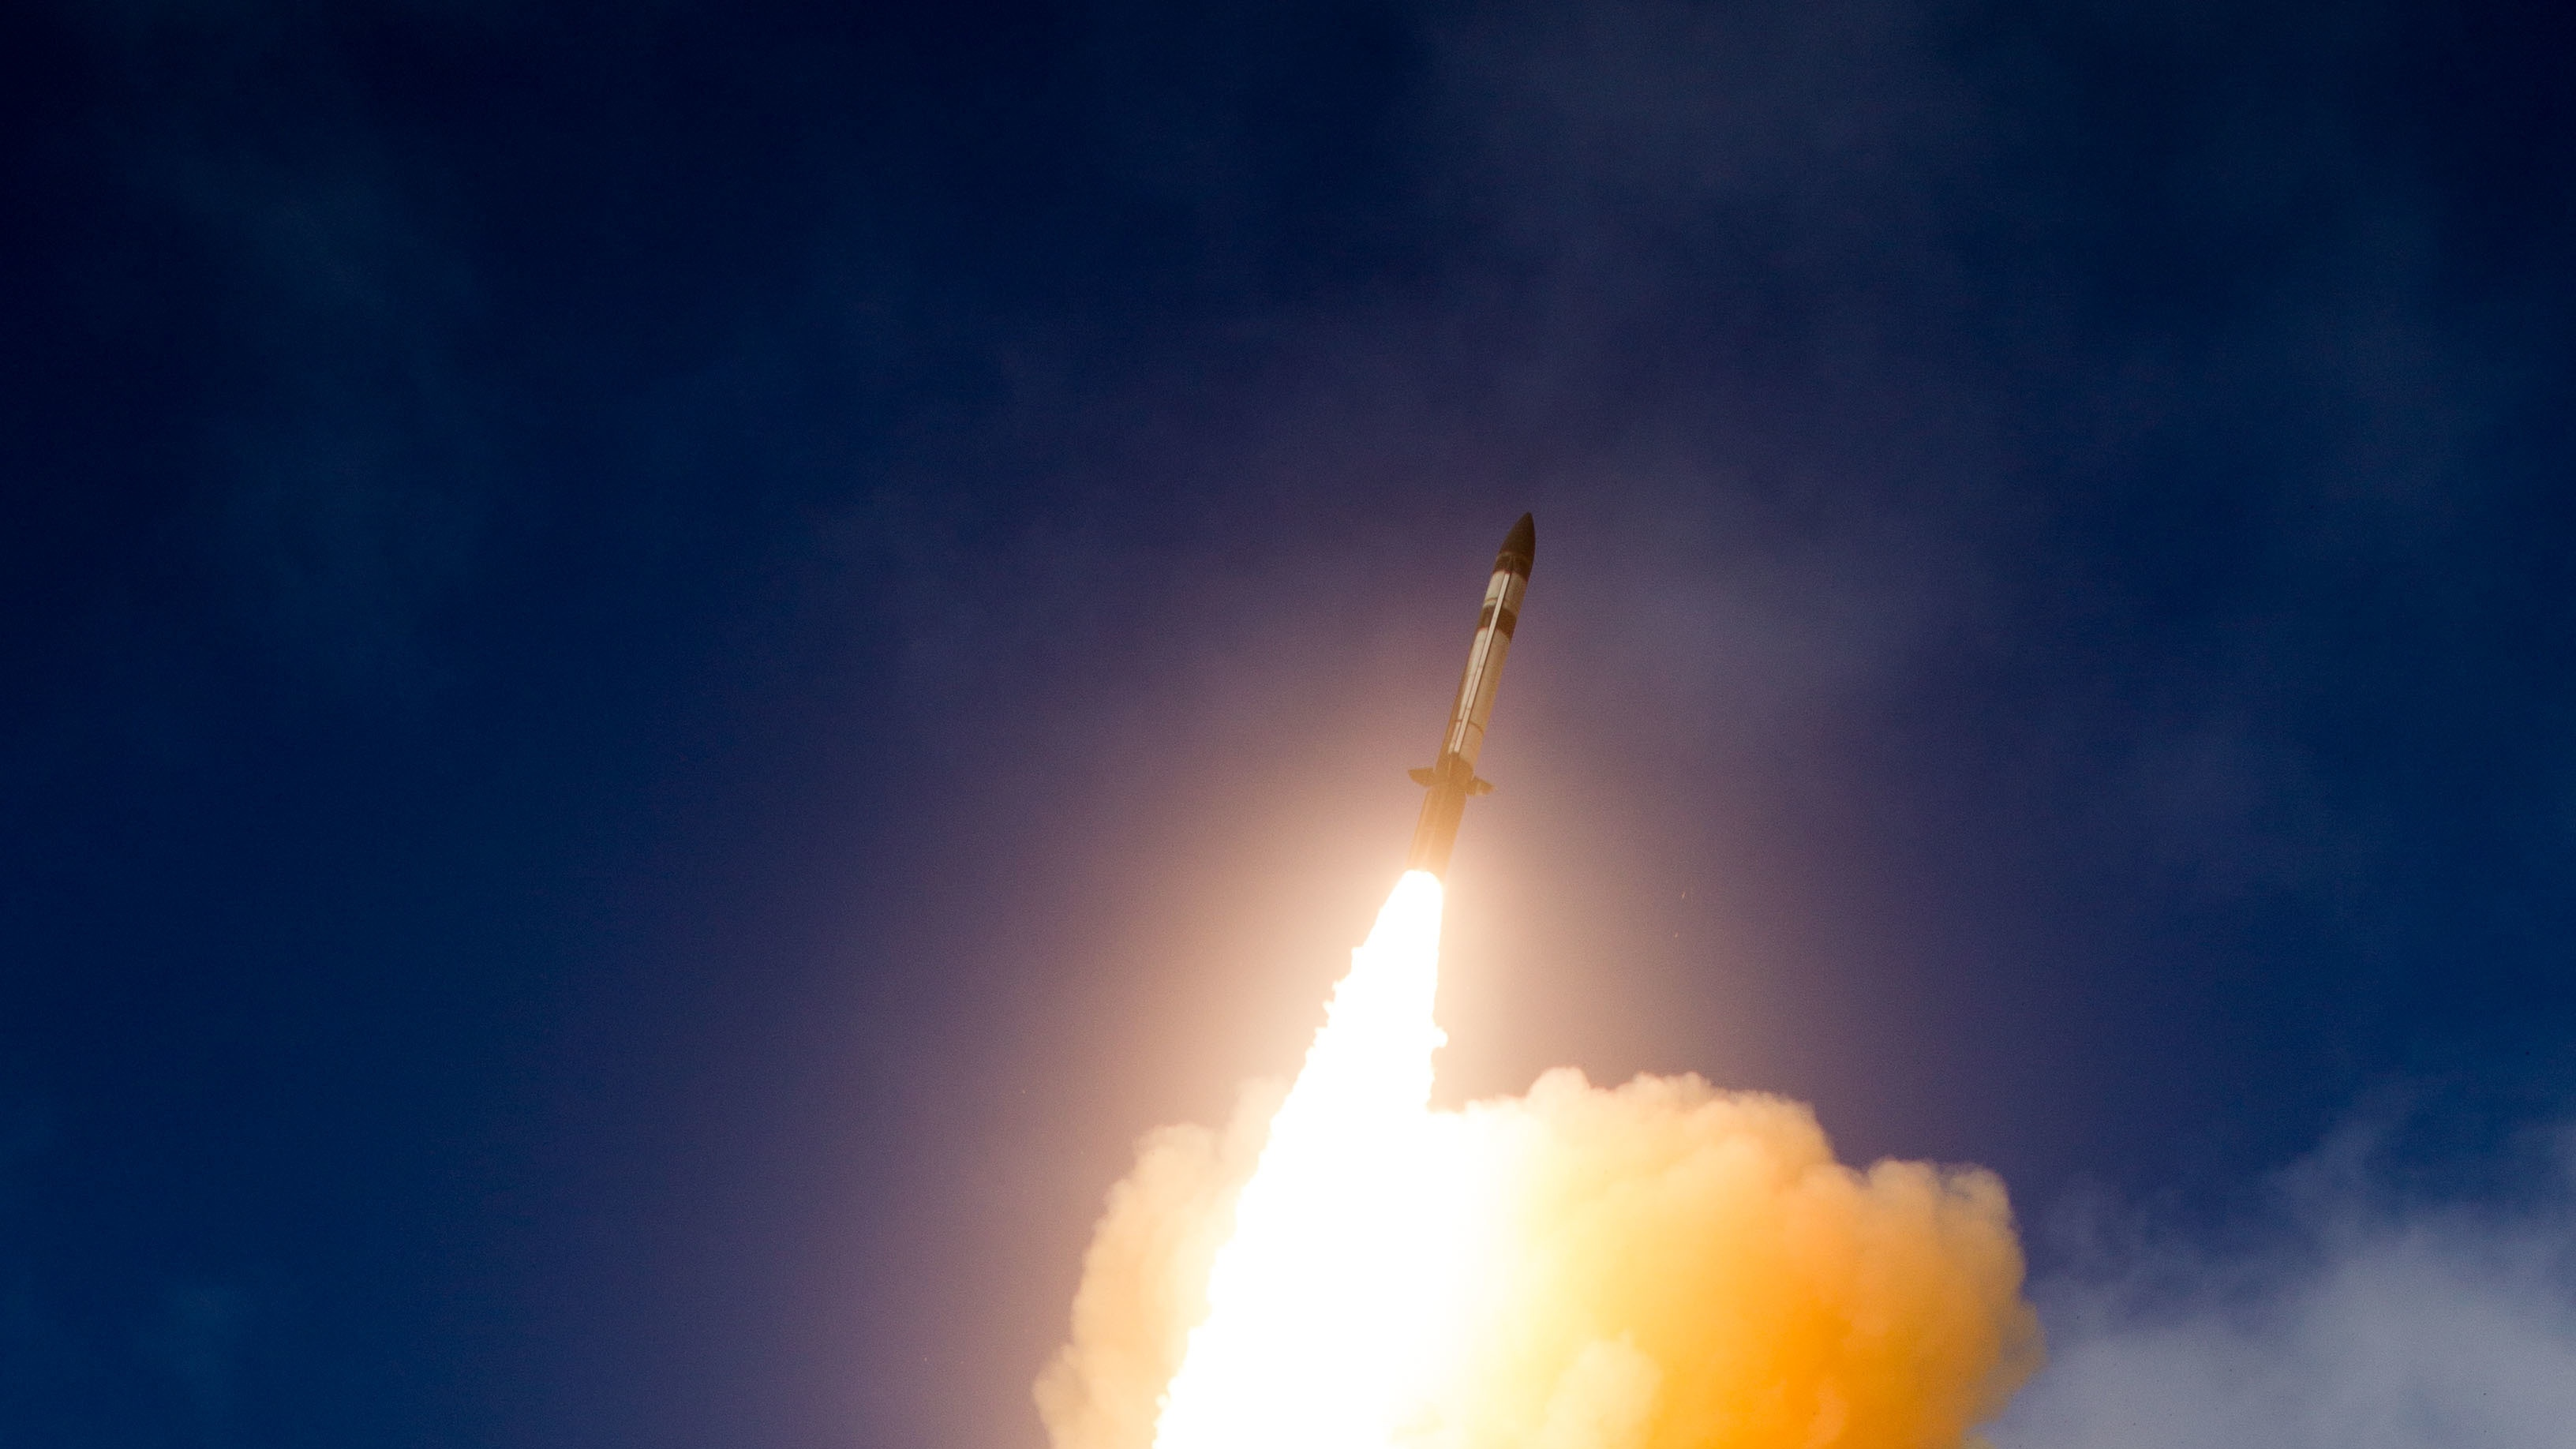 The U.S. Navy and Missile Defense Agency conducted a successful intercept of an intermediate-range ballistic missile with an SM-3 Block IIA fired from an Aegis Ashore facility in Hawaii. (U.S. Missile Defense Agency)